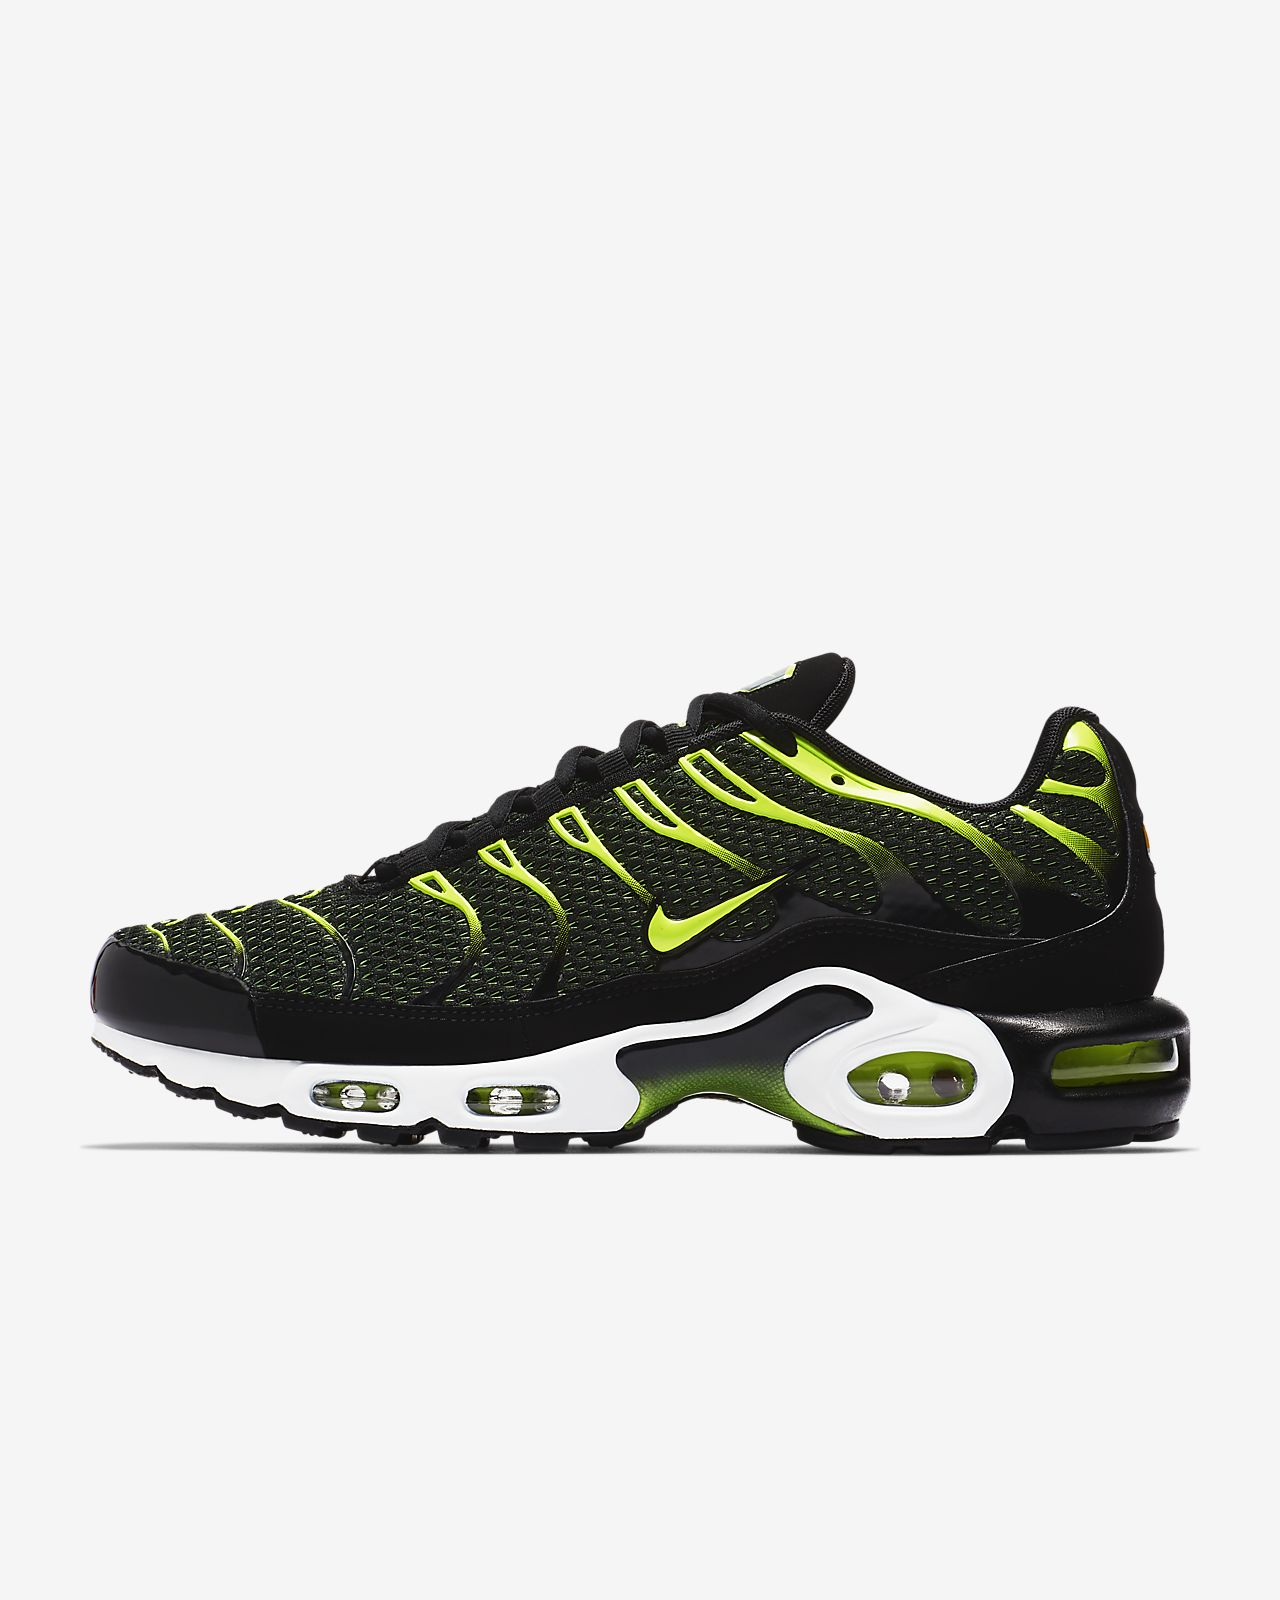 af539ea7cb39 ... coupon code for nike air max plus mens shoe 87a13 ecf05